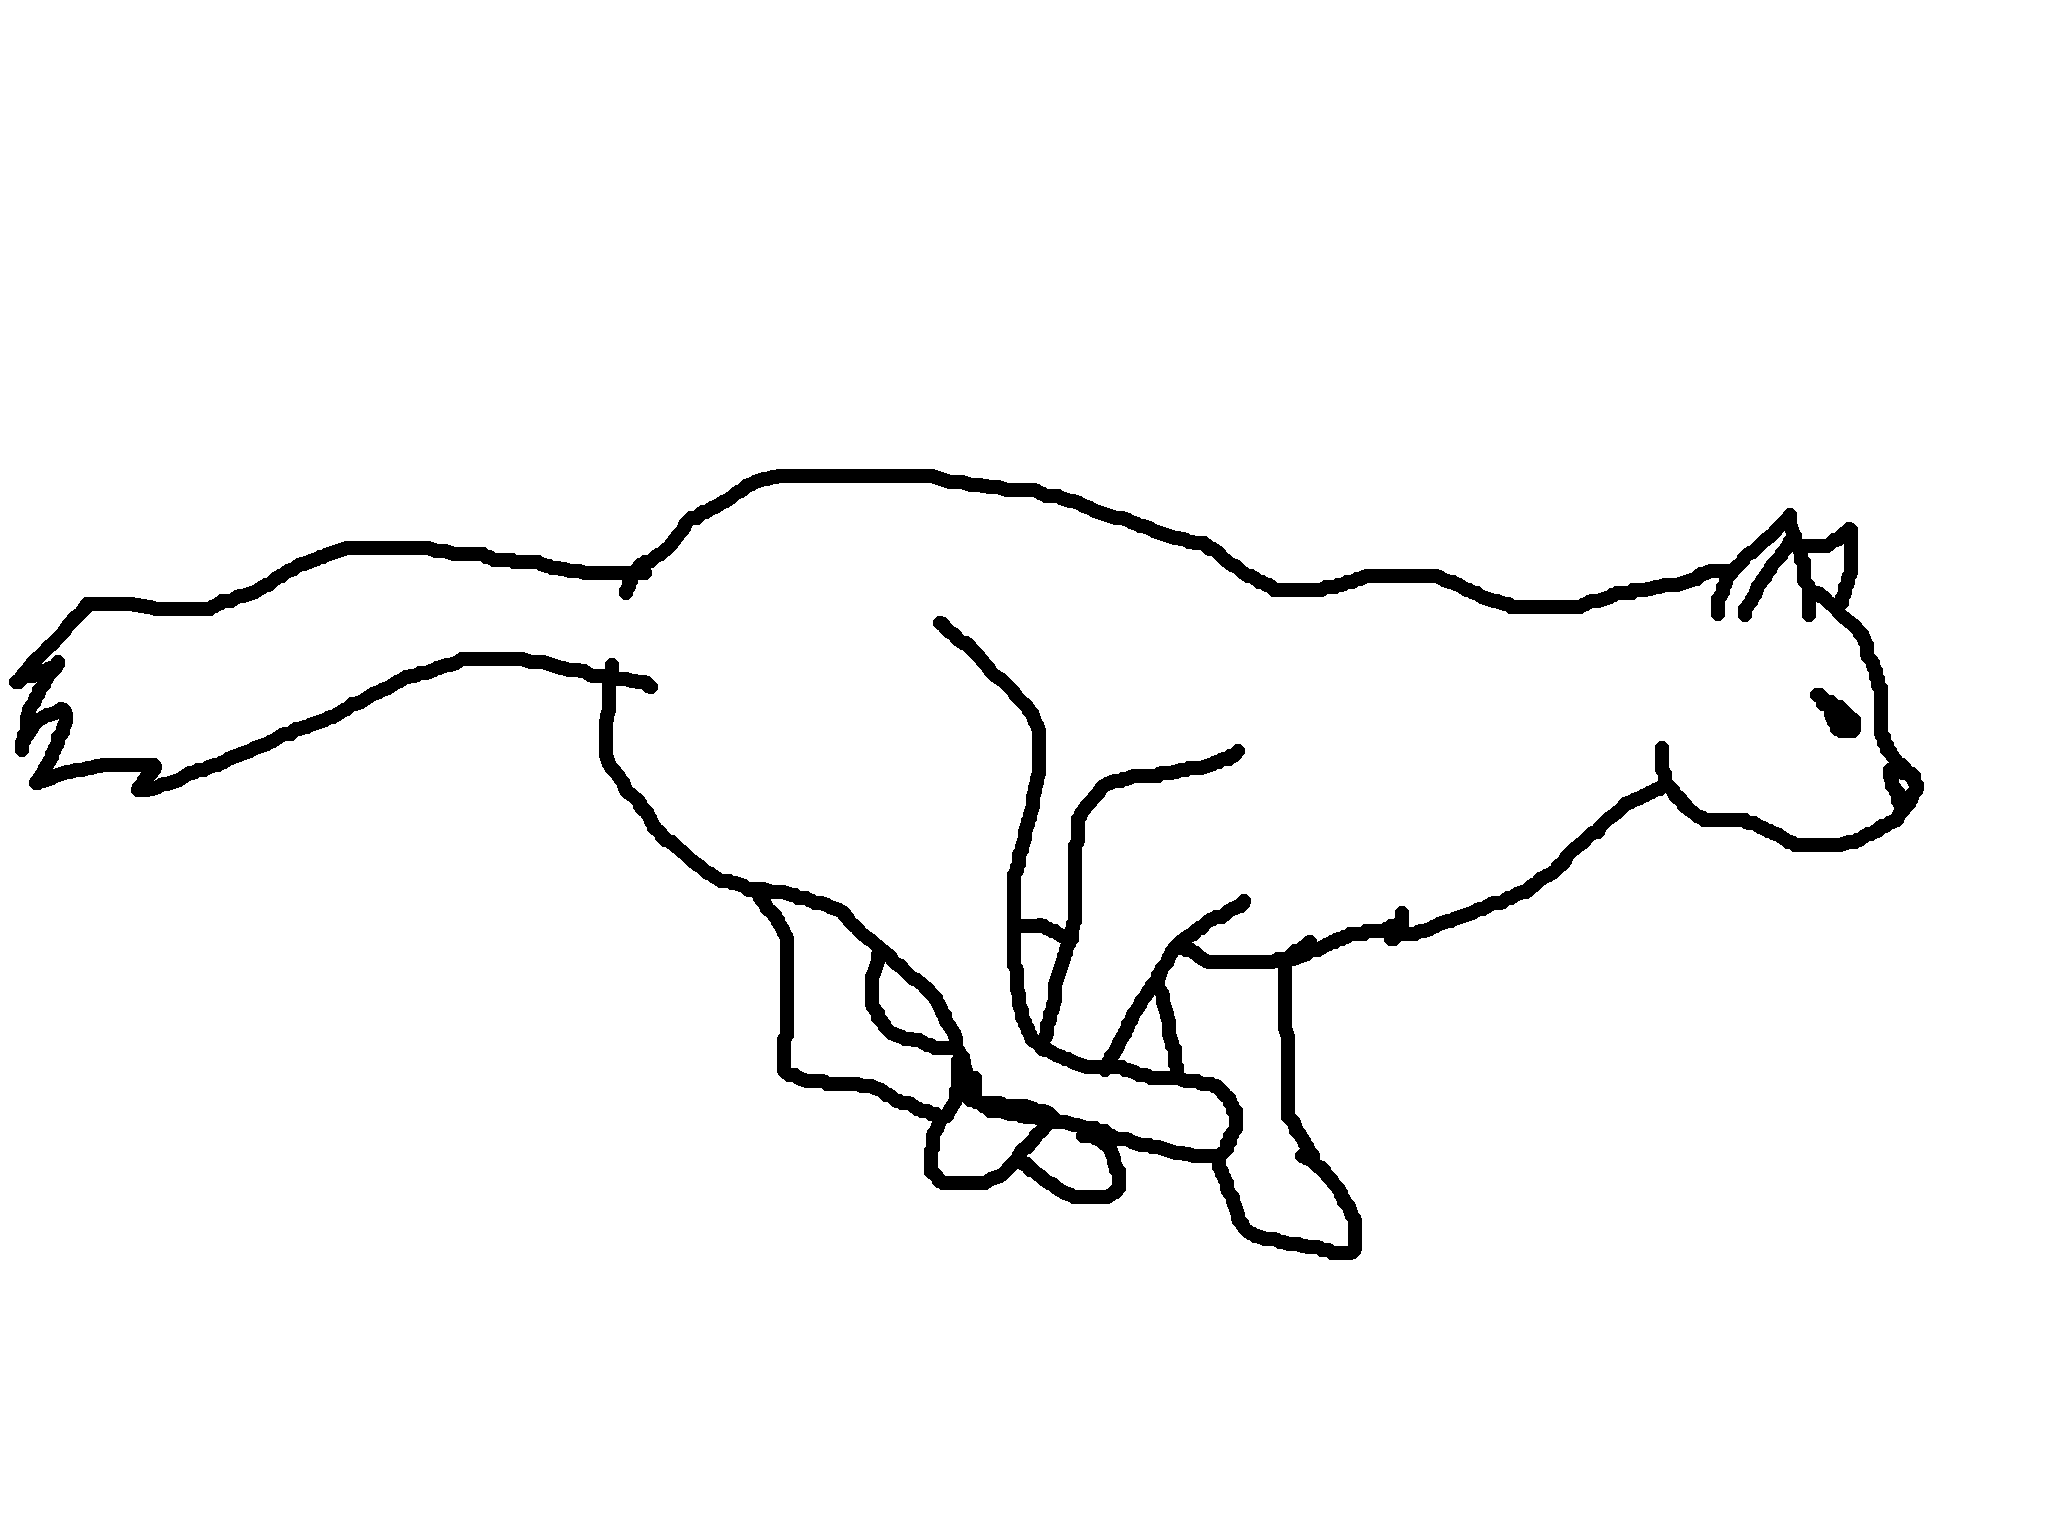 Realistic Running Cat Lineart By Spottedheart22 On Clipart